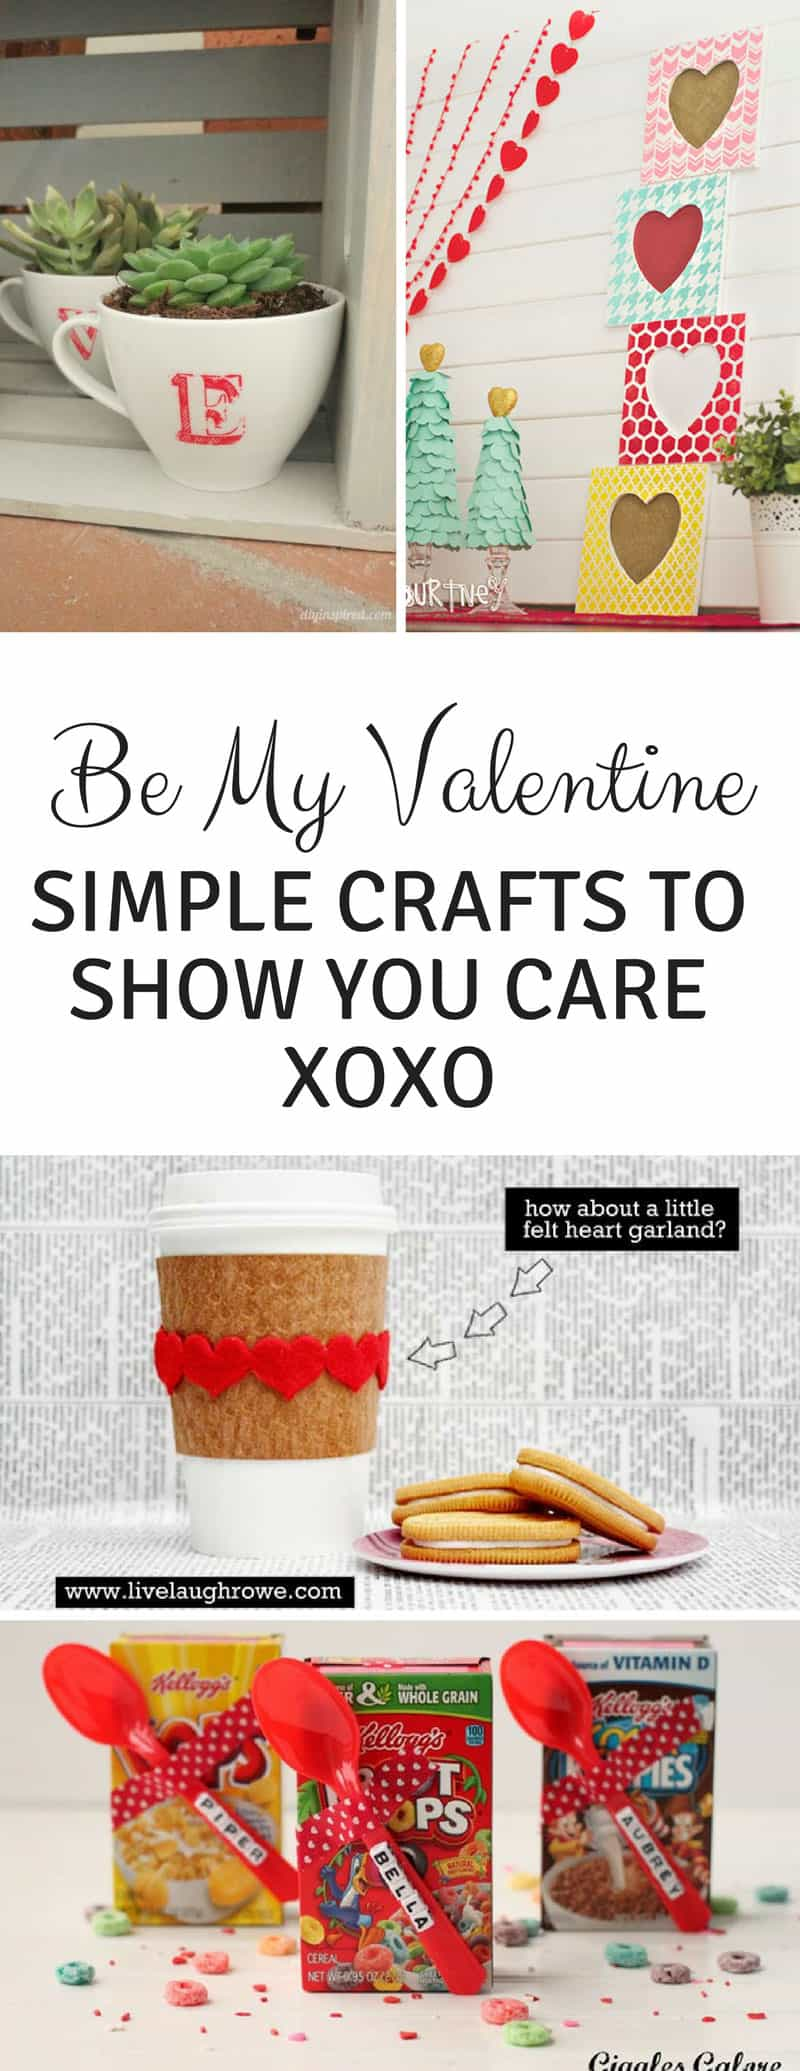 Valentines Day Crafts for Grownups - Is your home looking just a little bare after taking down all of the Christmas decorations? Why not decorate for Valentine's Day? We've rounded up some of the best Valentine's Day crafts we could find so you can spread a little love ahead of February 14. Because we shouldn't save the love for just one day a year right?